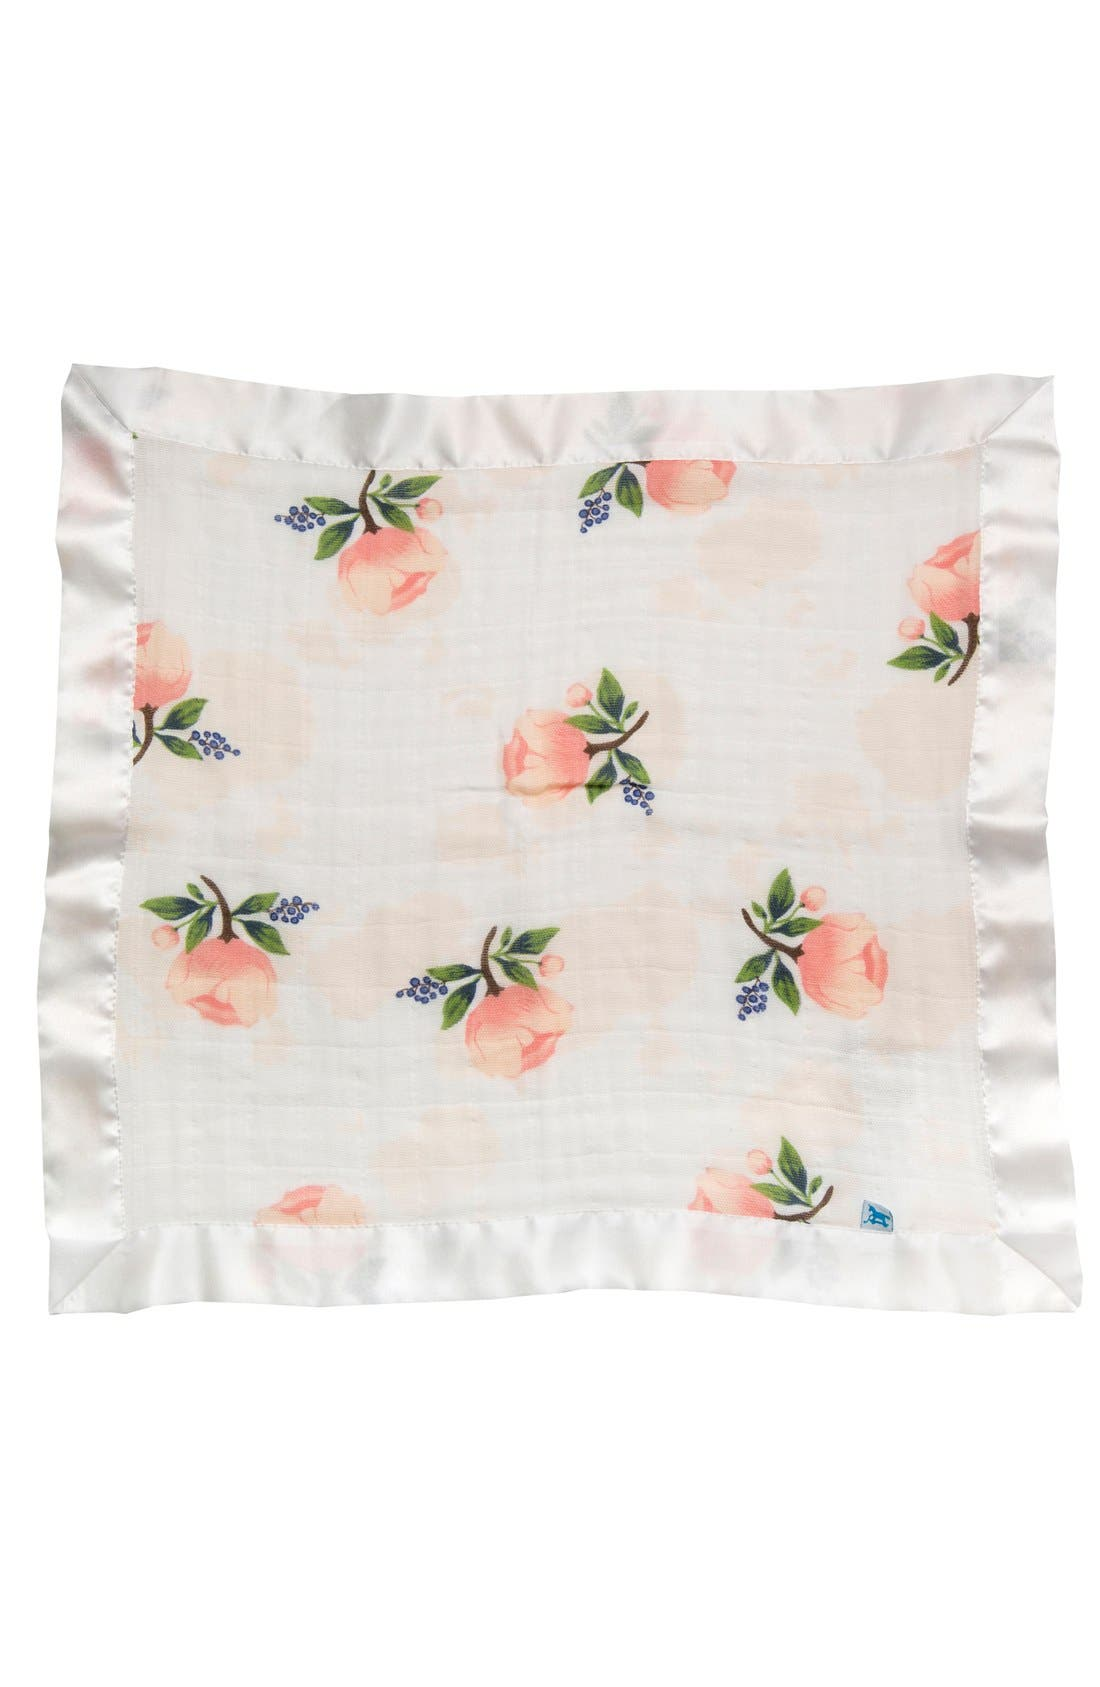 2-Pack Cotton Muslin Blankets,                         Main,                         color, Watercolor Rose